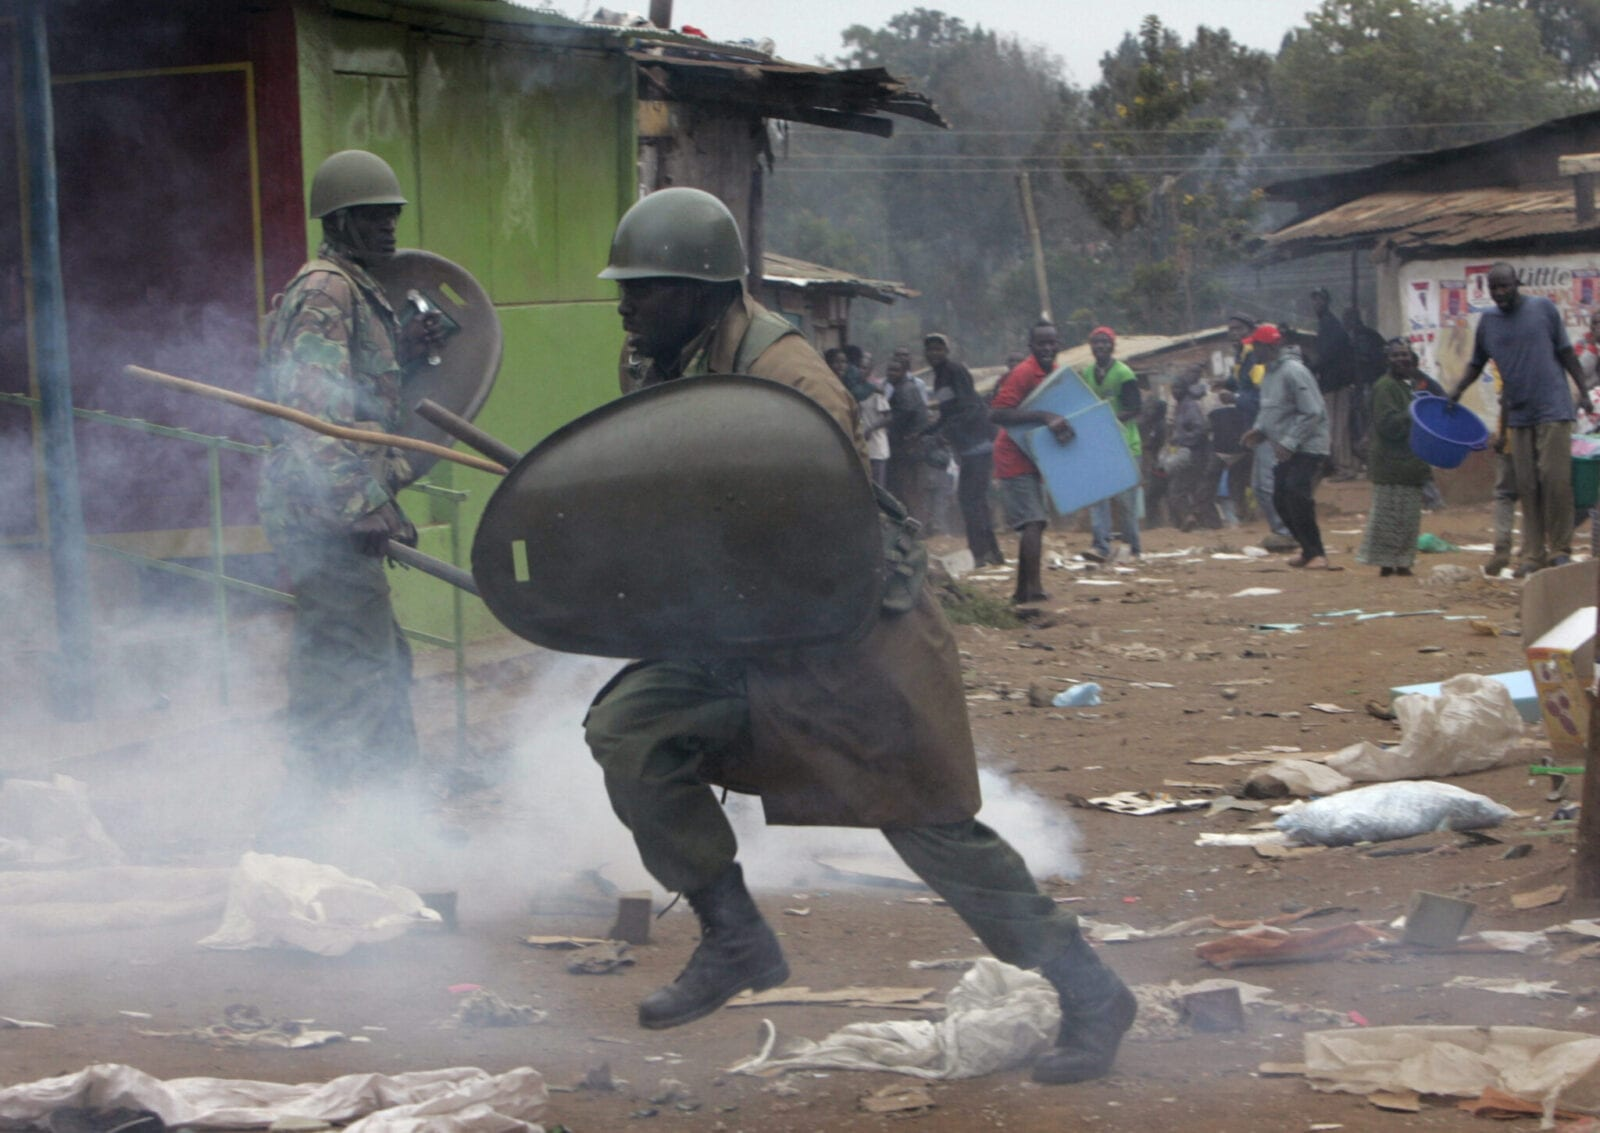 A riot police officer runs away from opposition supporters throwing stones on Monday, Dec. 31, 2007 during riots at the Kibera slum in Nairobi. Police fired shots in the air and sent tear gas into Nairobi's slums Monday as President Mwai Kibaki began a second term after an election marred by violence and allegations that he stole the vote. (AP Photo/Karel Prinsloo)